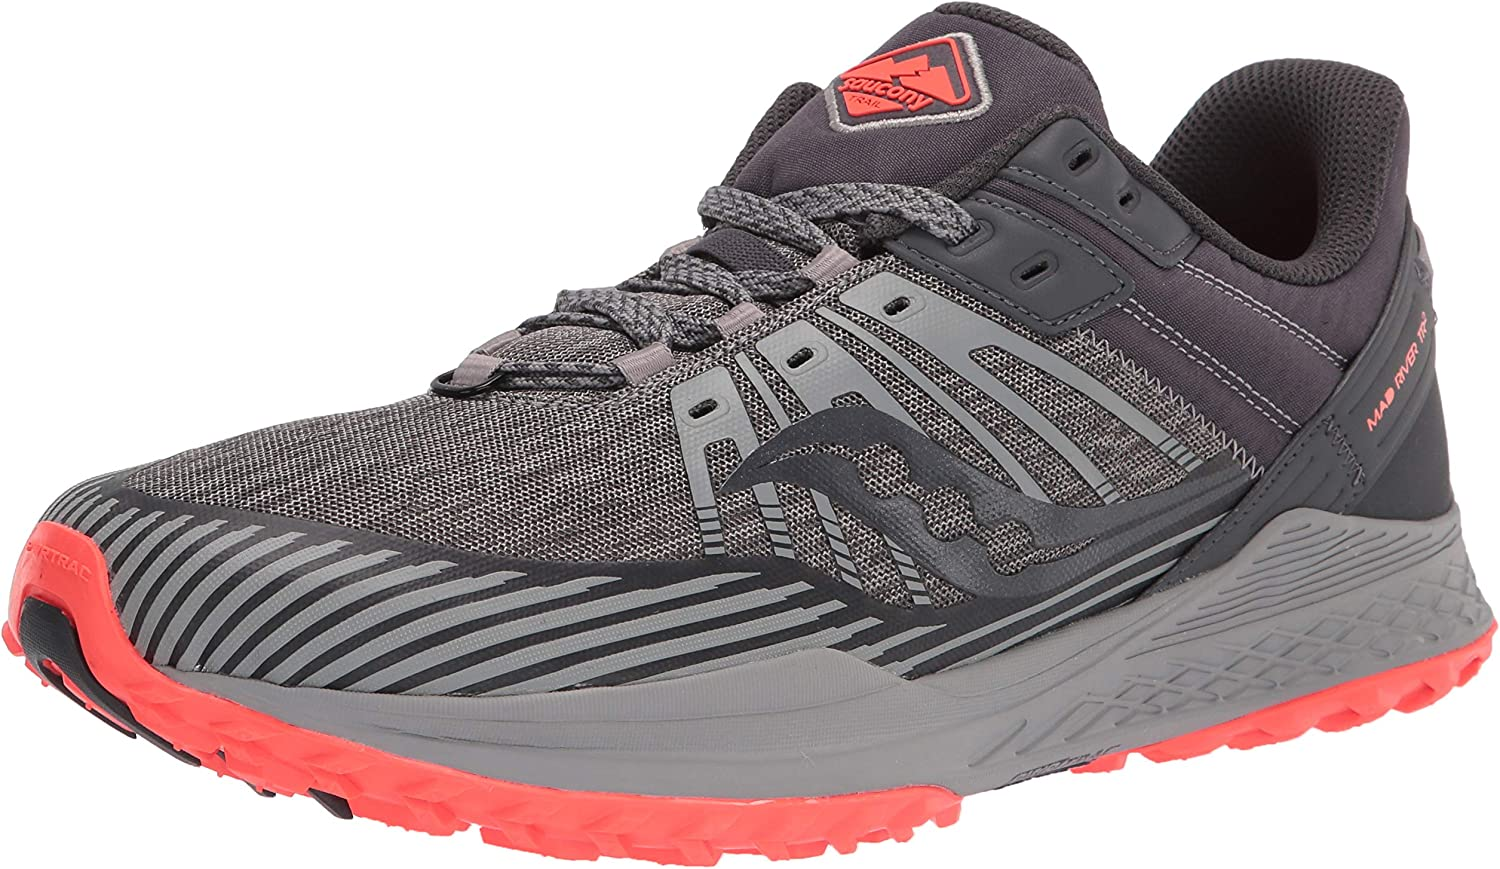 Saucony Men's Mad River Tr 2 Trail Running Shoe